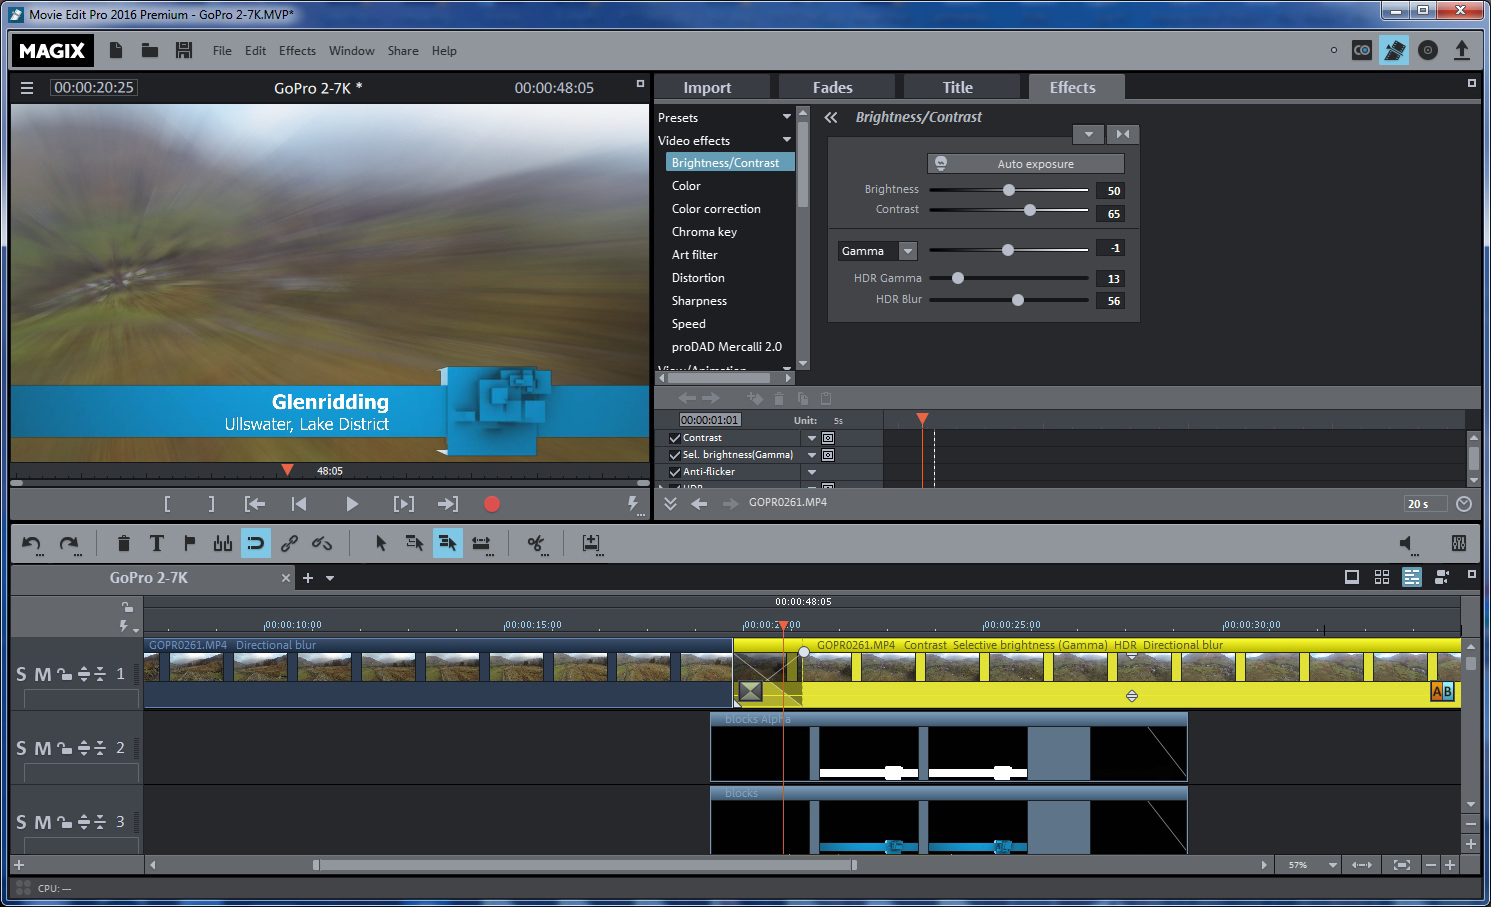 Magix movie edit pro 2016 premium review great video for Magix movie edit pro templates